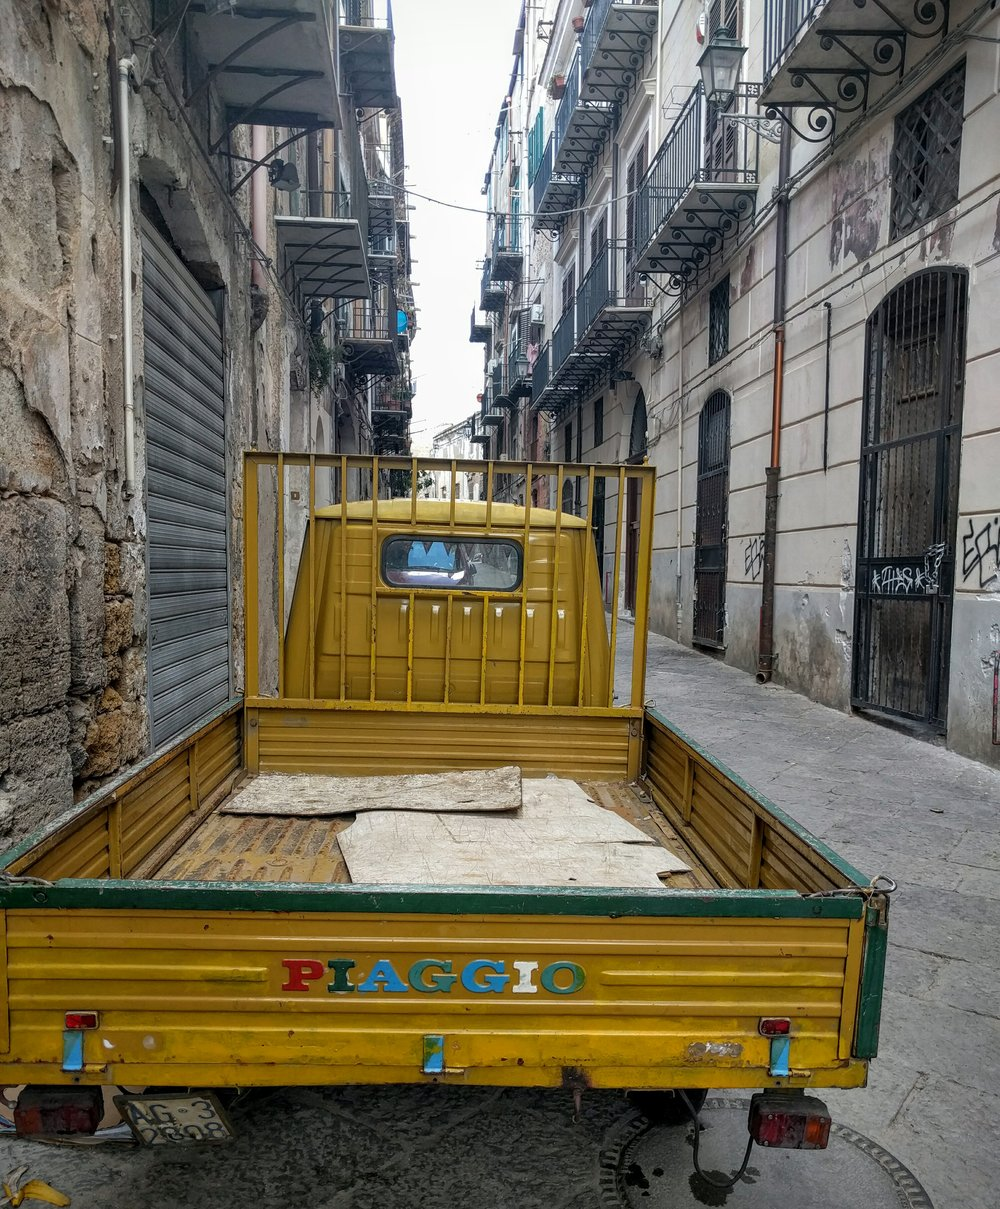 Mini delivery truck in Palermo... hard to tell the scale here, but it's small.